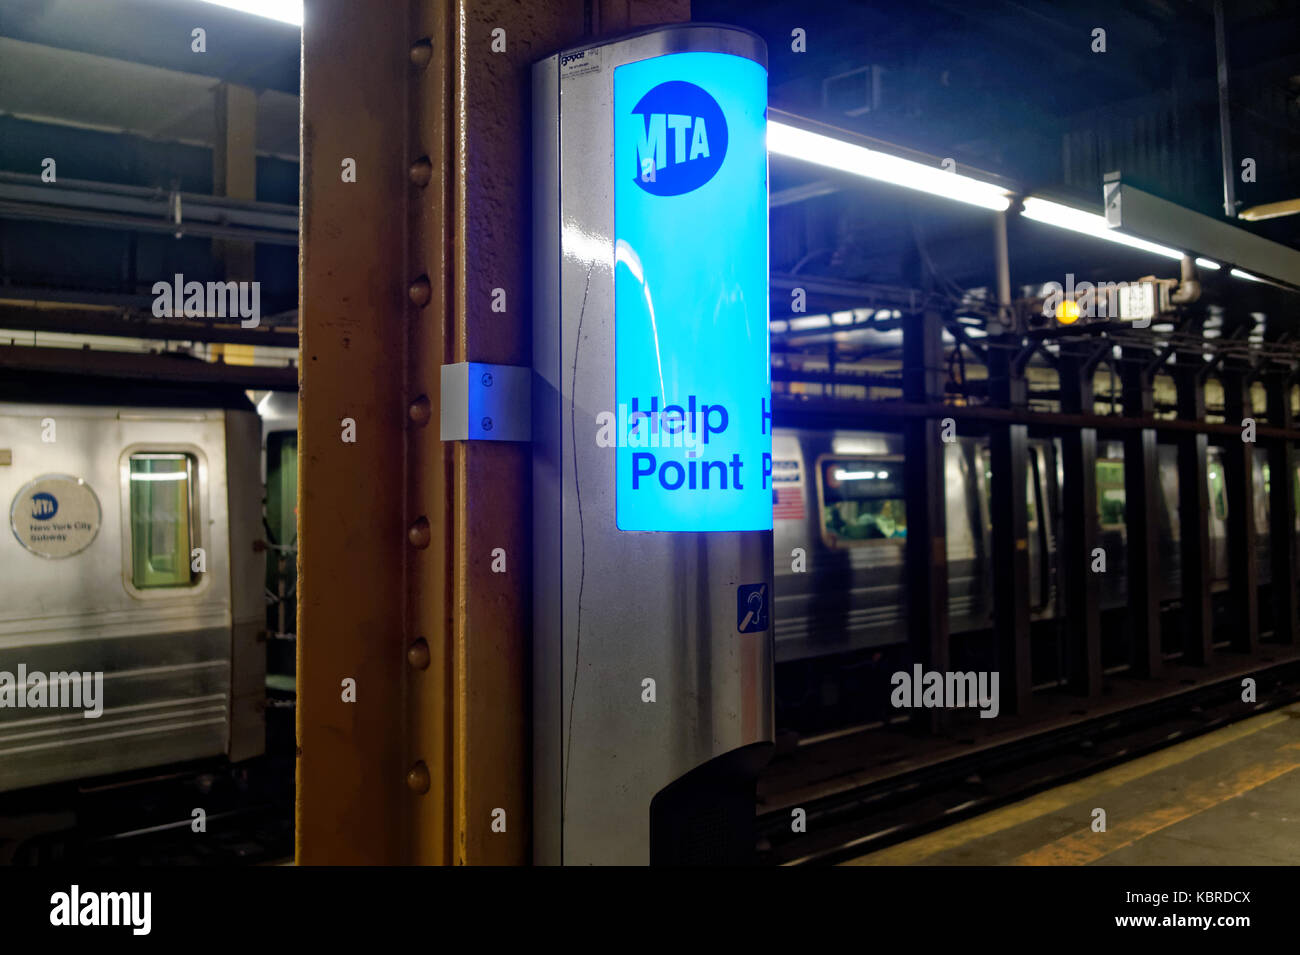 MTA emergency telephone or intercom on a subway platform with train arriving in the background. - Stock Image